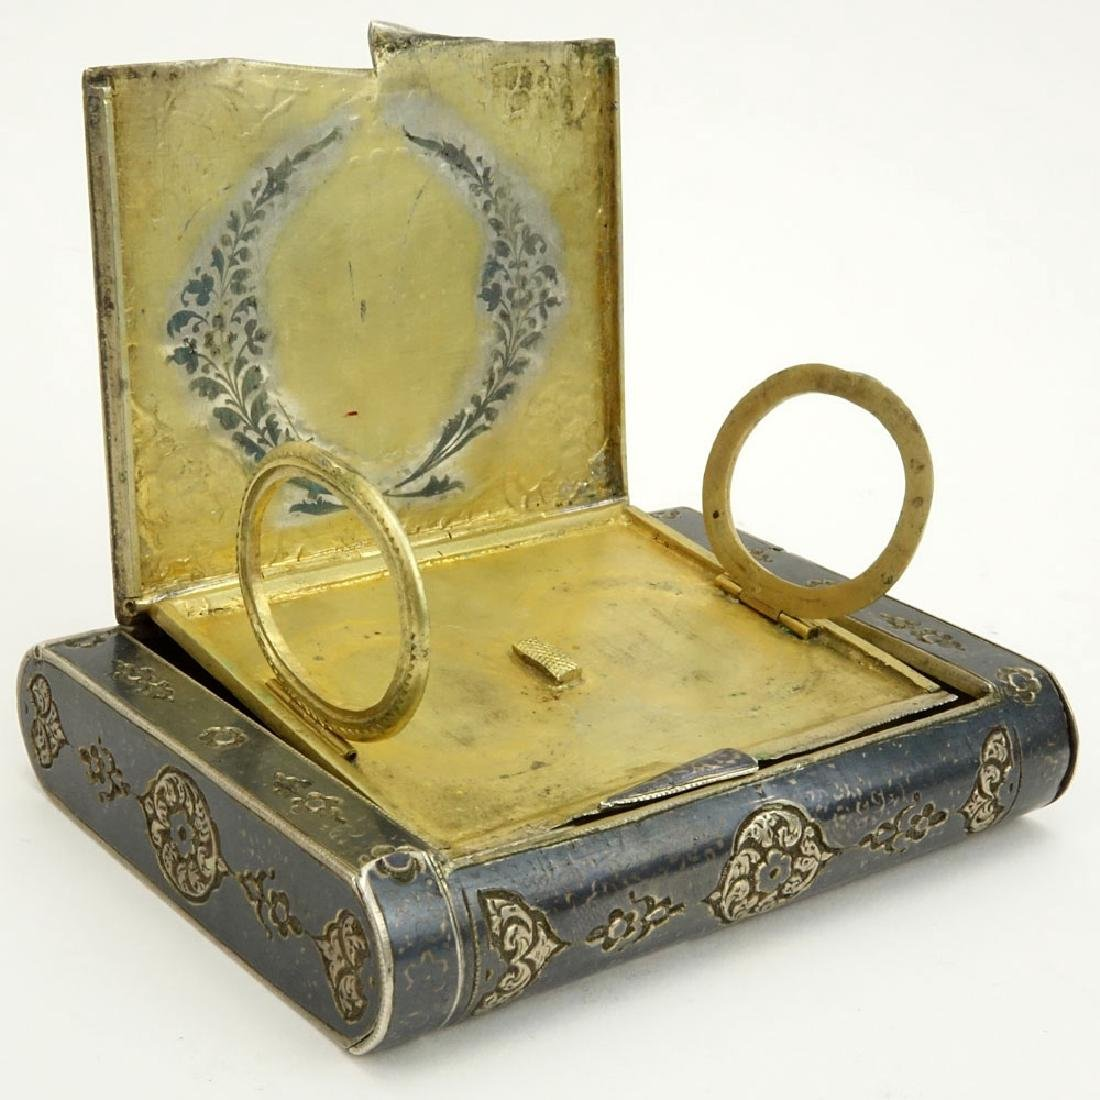 Early 20th Century Russian Steel Cigarette Case with - 4